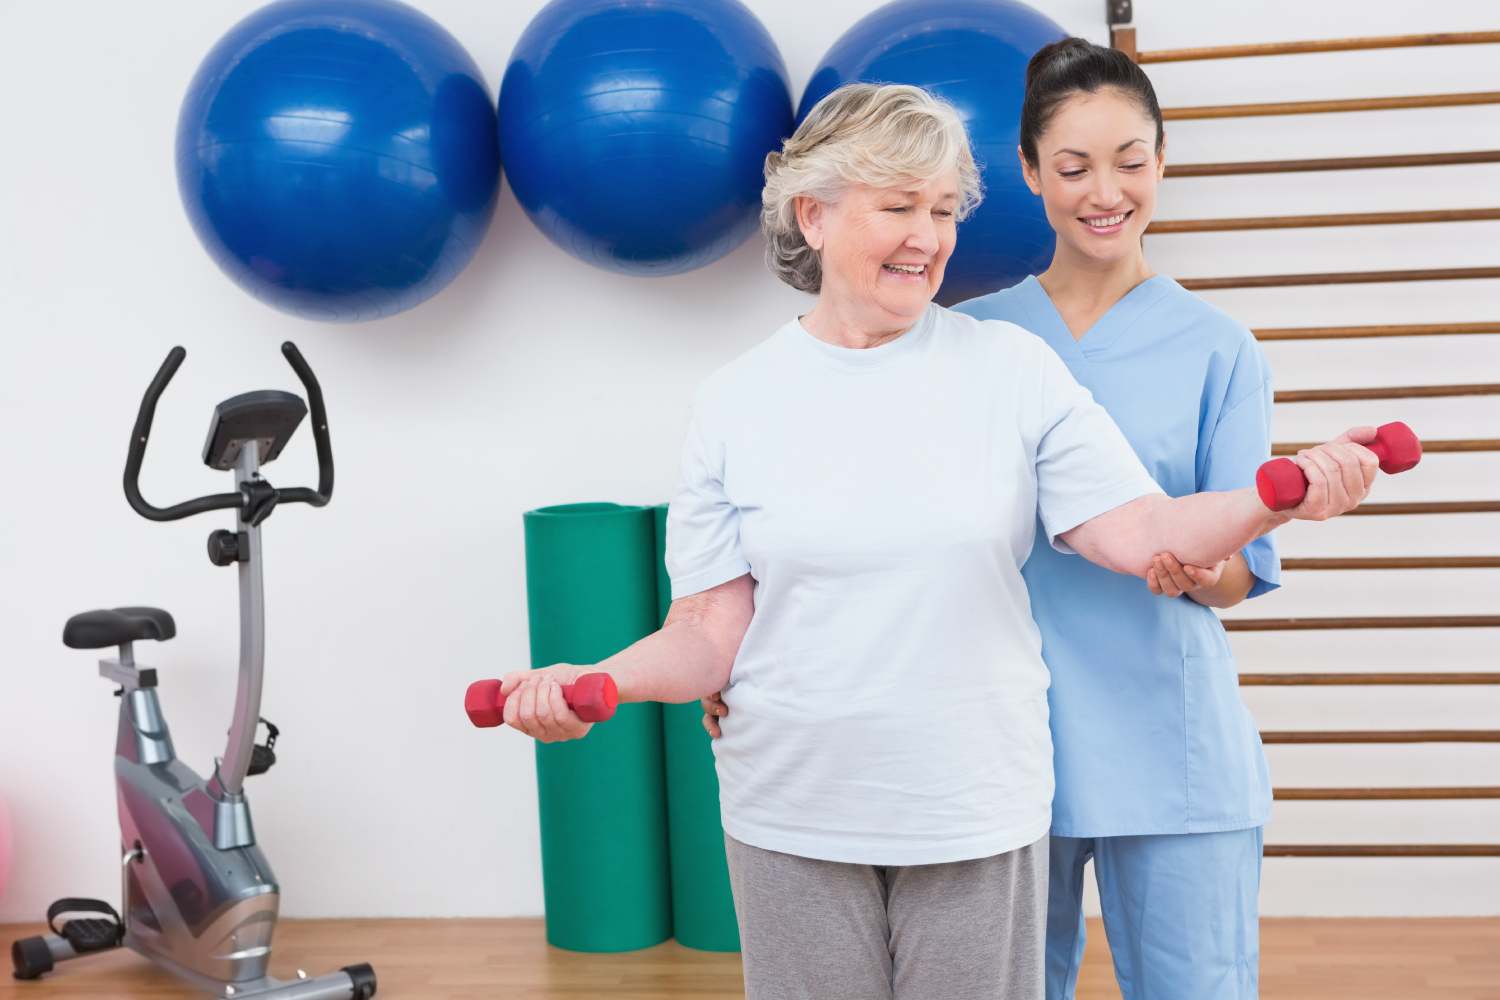 Clinician with patient using small weights in physio